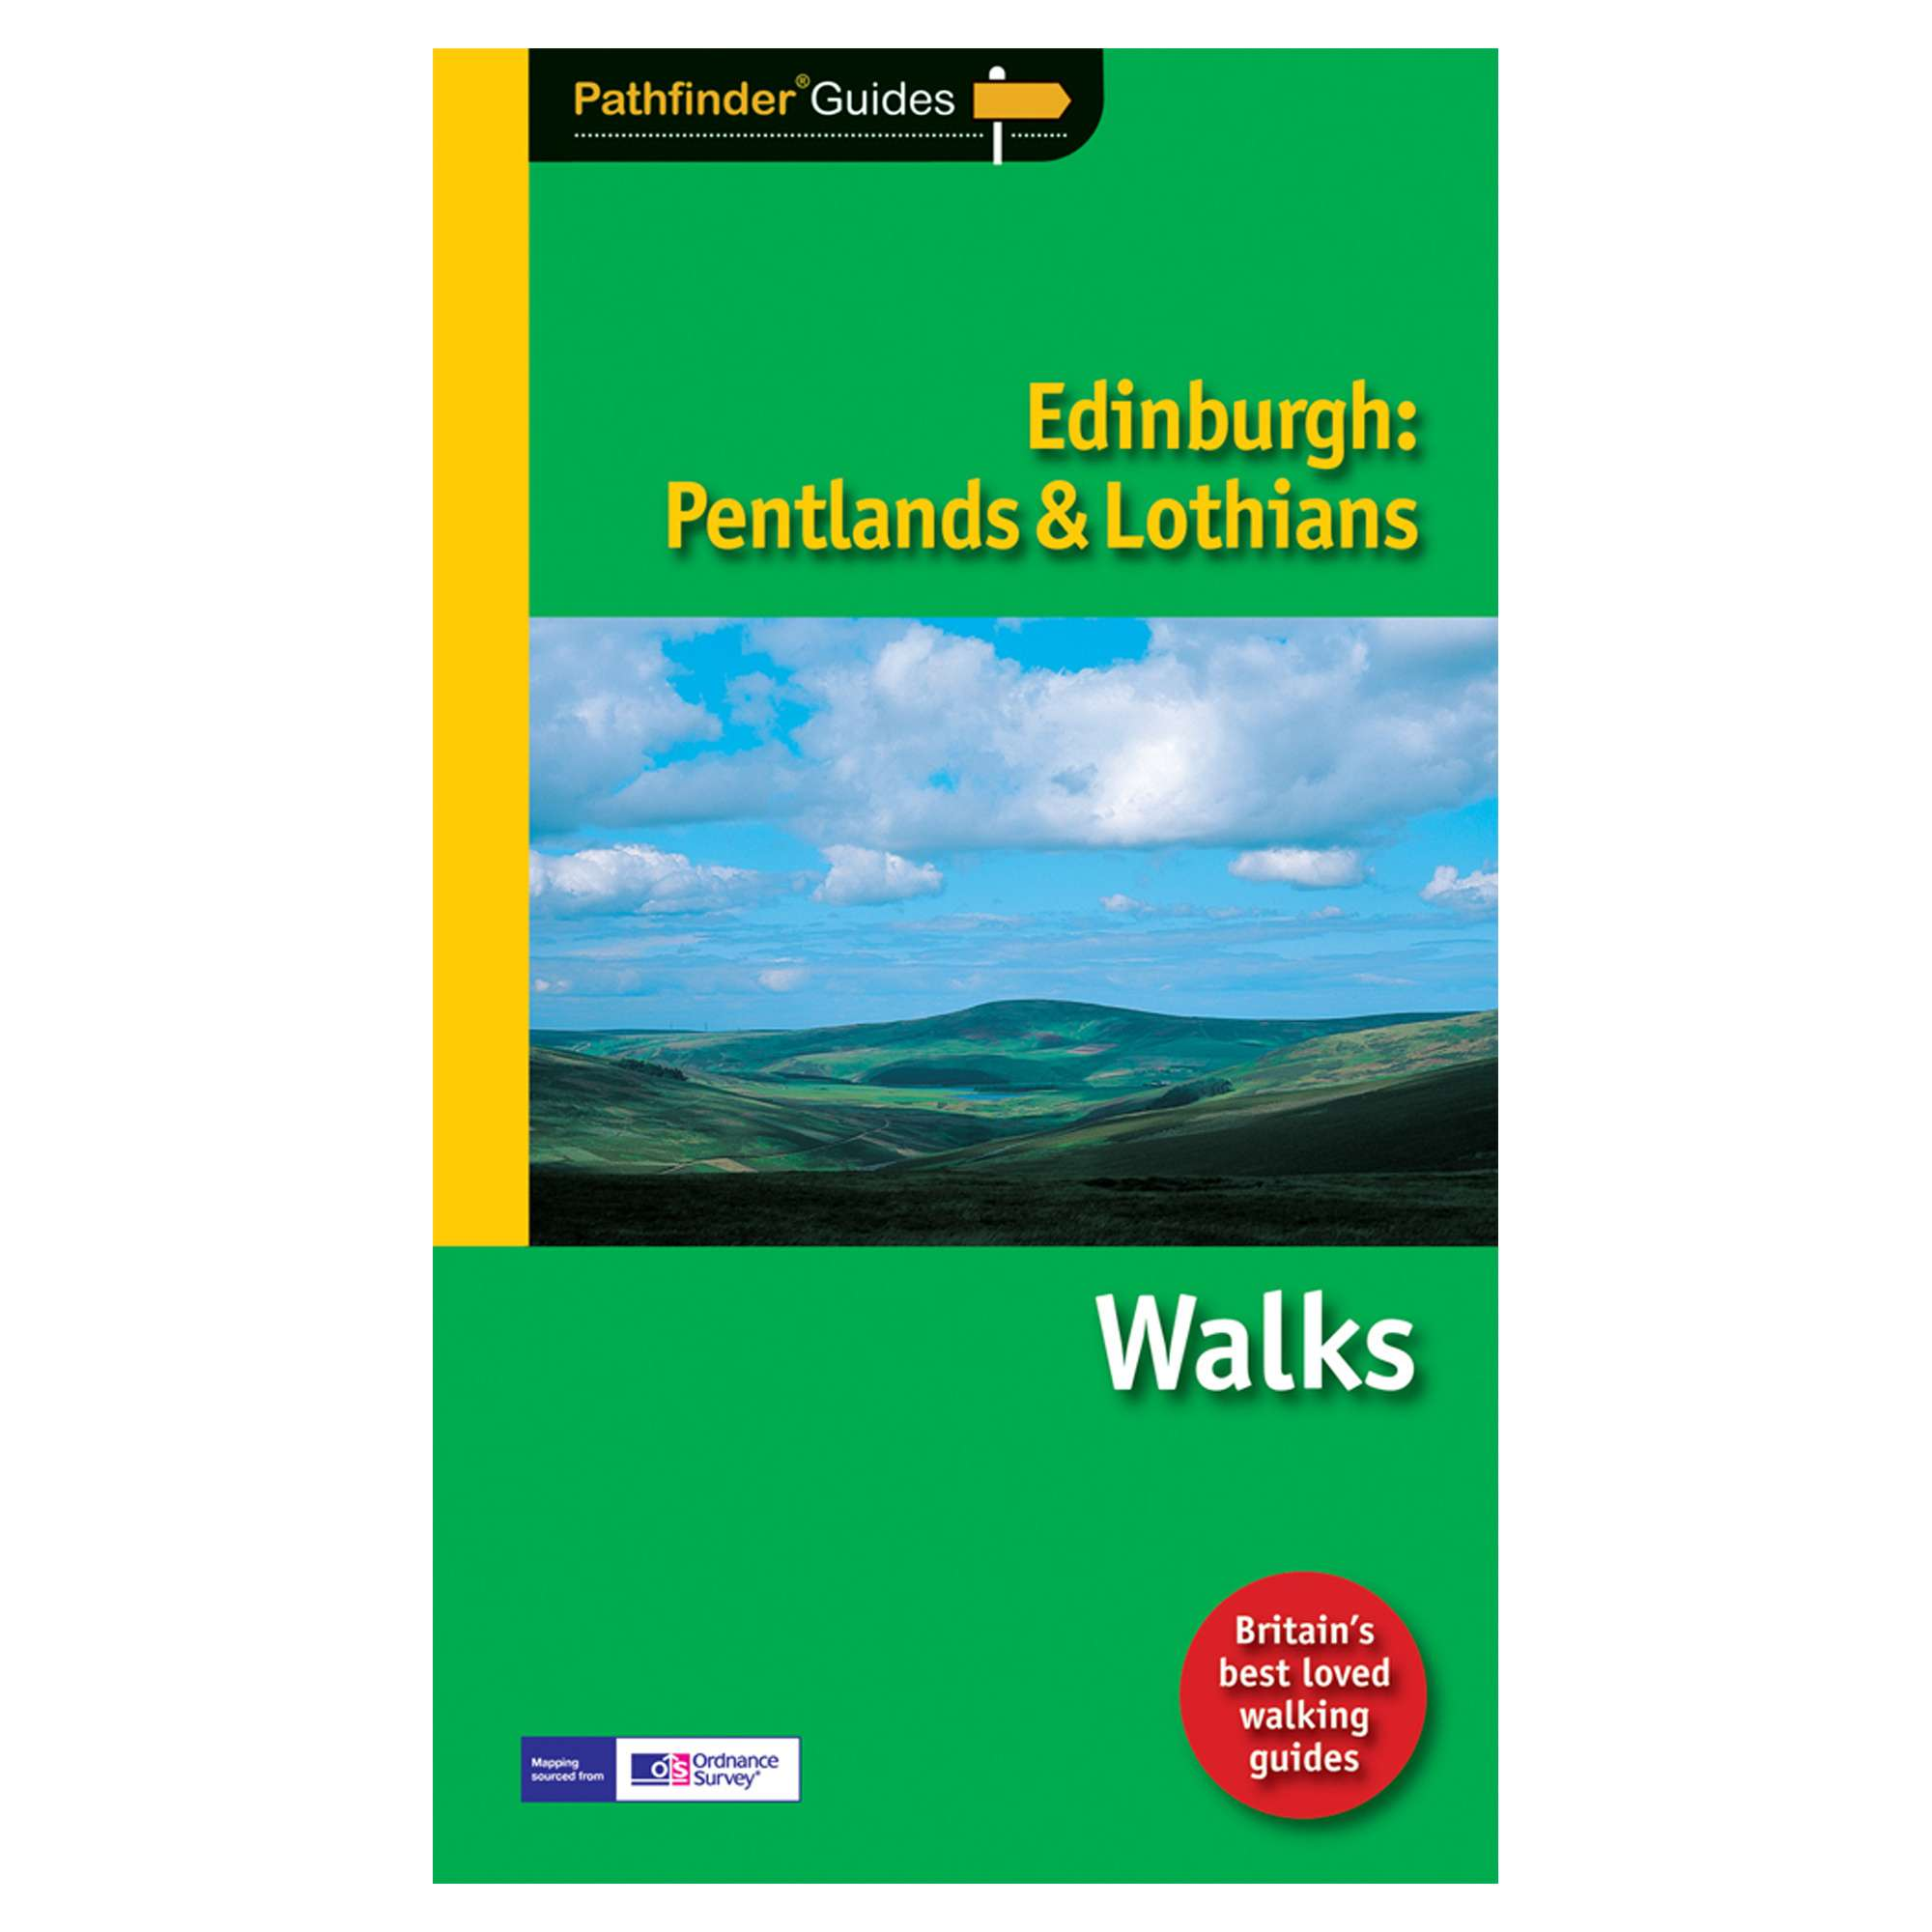 PATHFINDER Edinburgh, Pentlands and Lothians Walks Guide